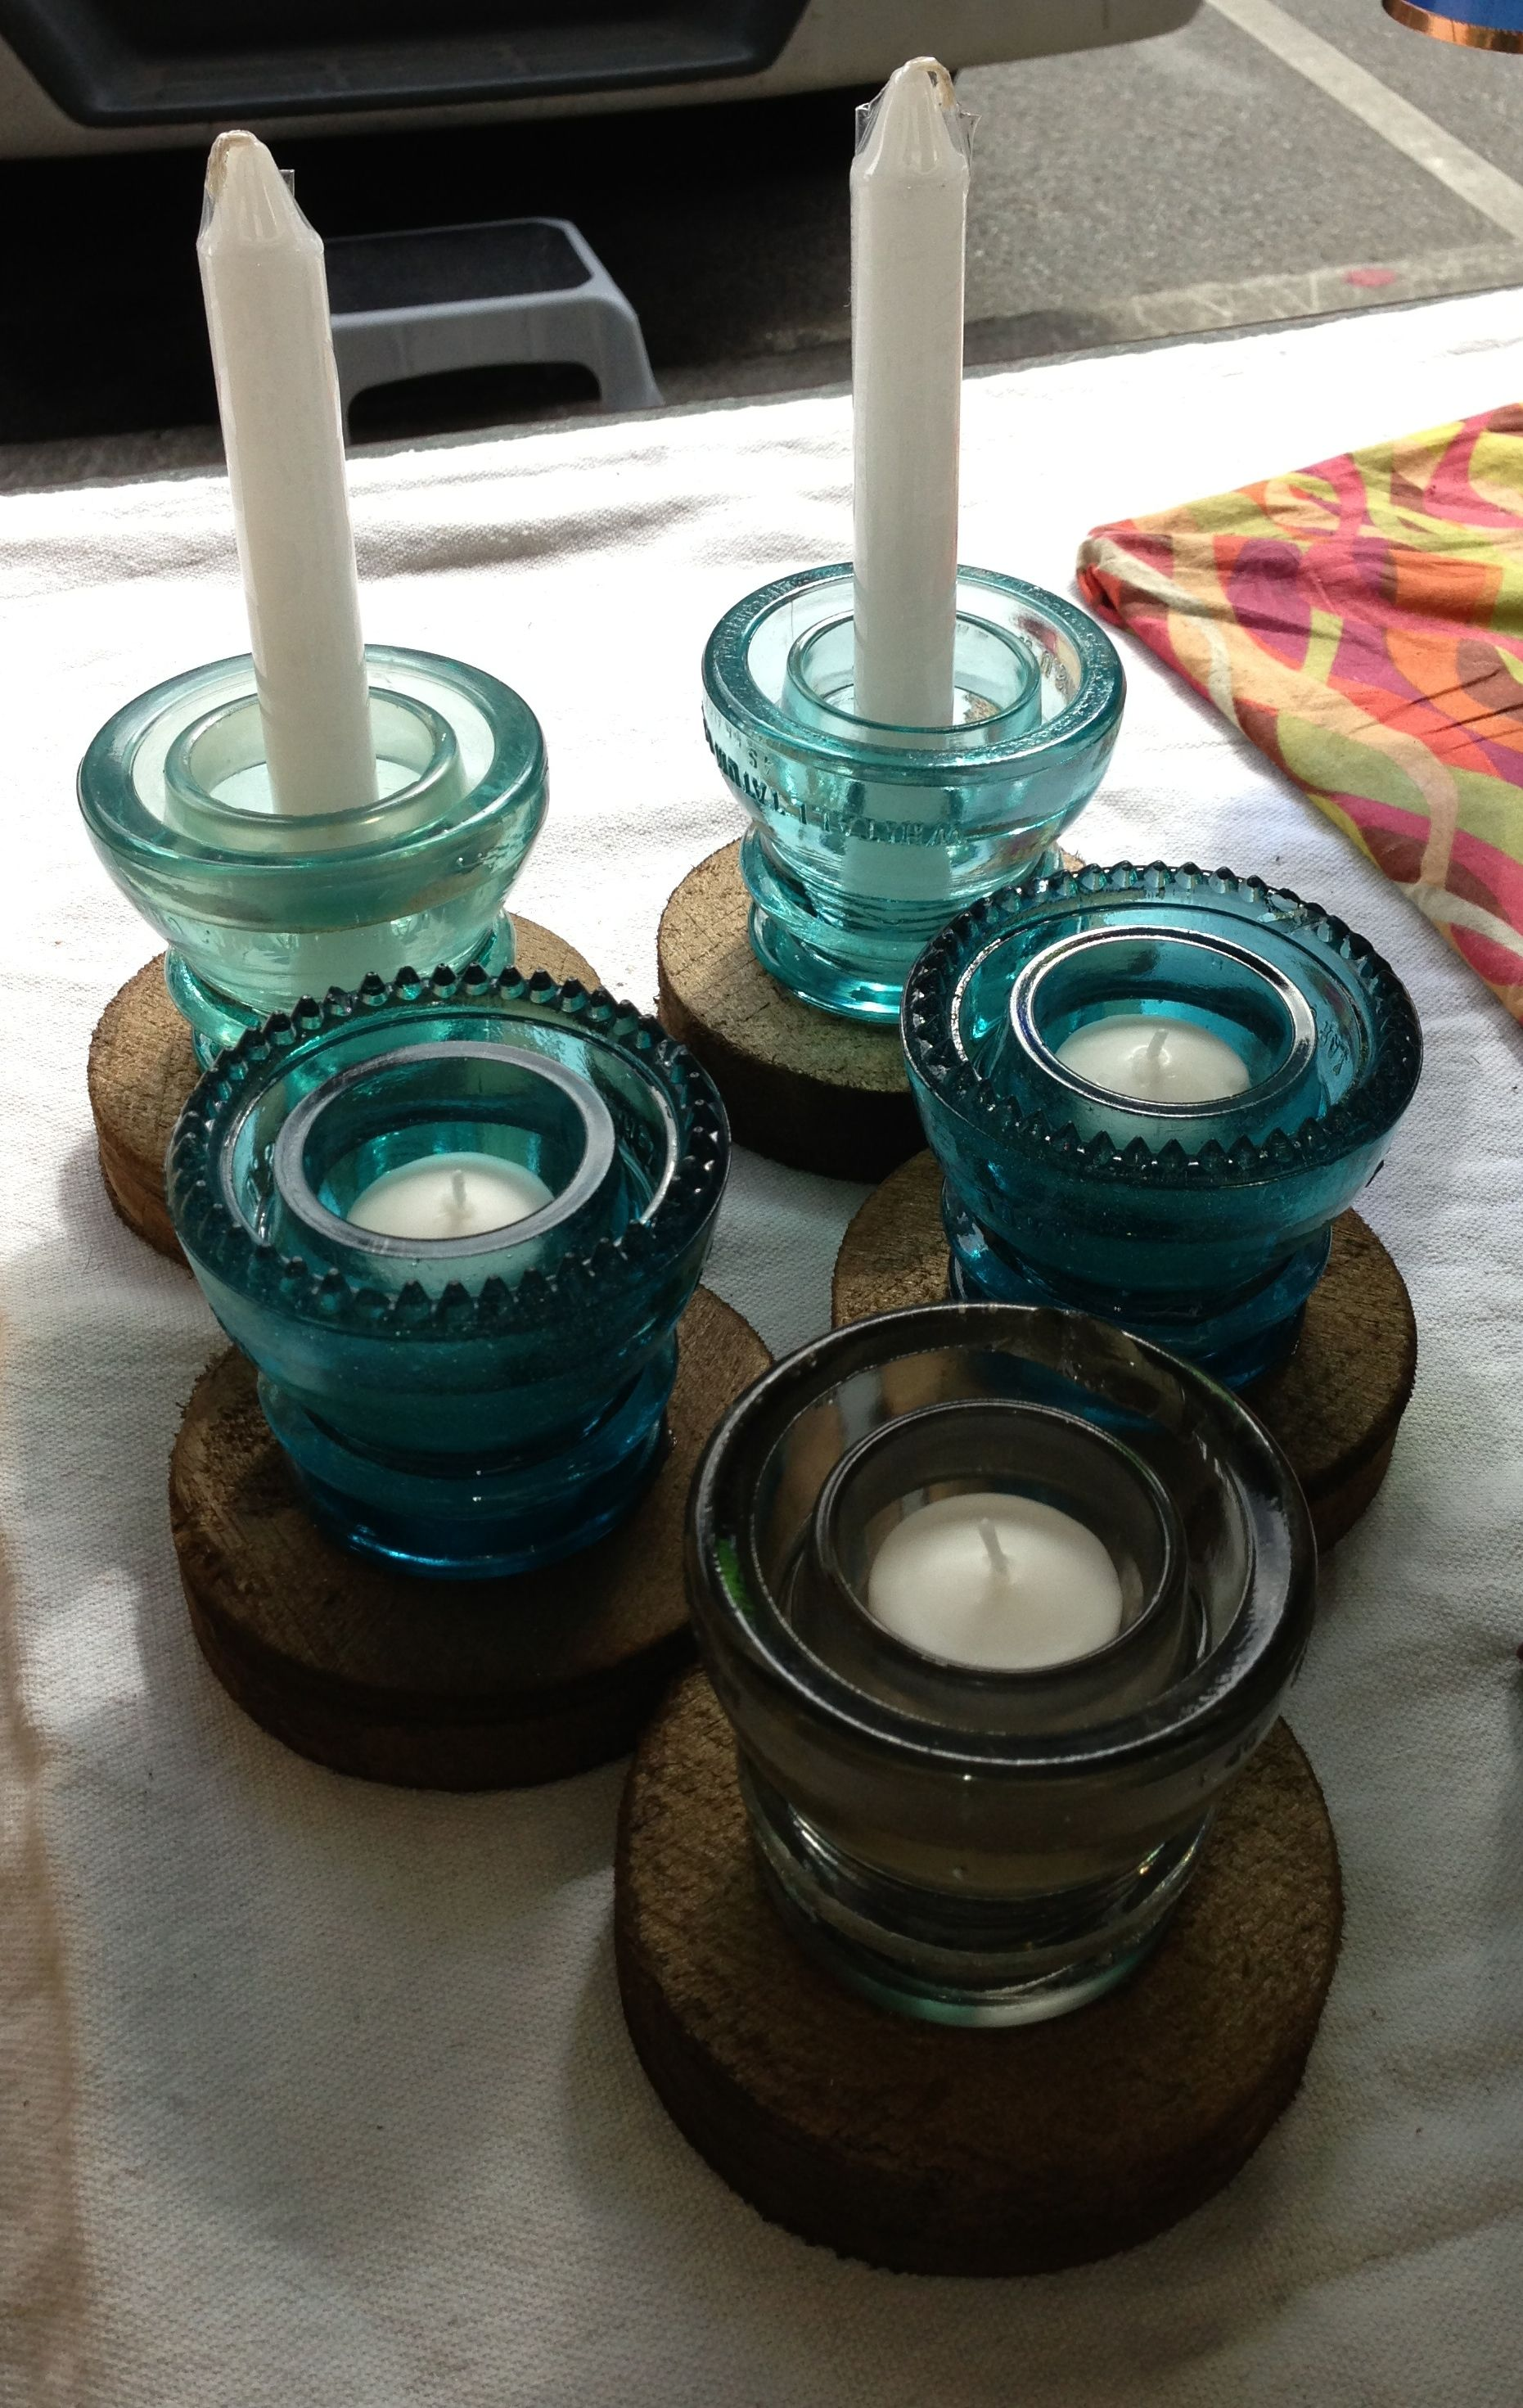 Assorted candle holders made from upcycled glass insulators. www.giveupcycled.com